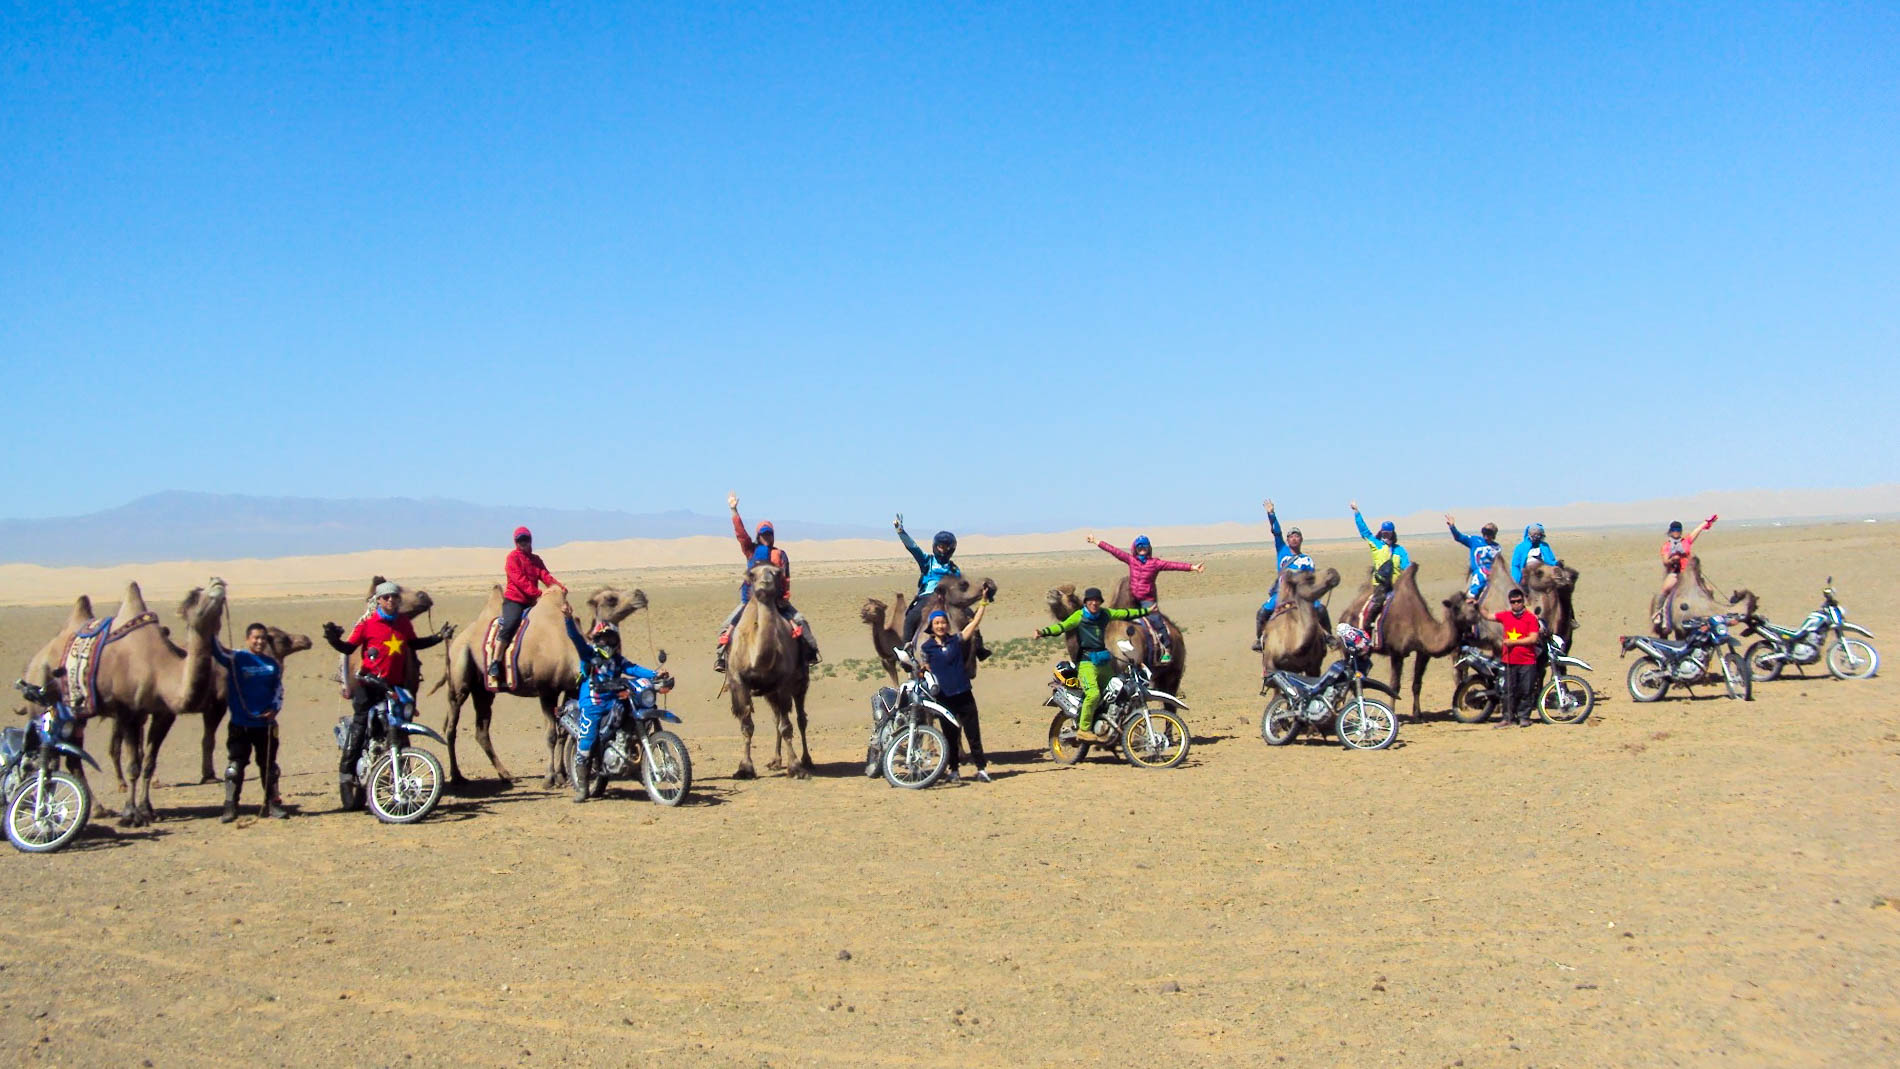 A group of travellers in Mongolia's Gobi Desert wave at the camera. Some are on camels while others are on motorcycles.